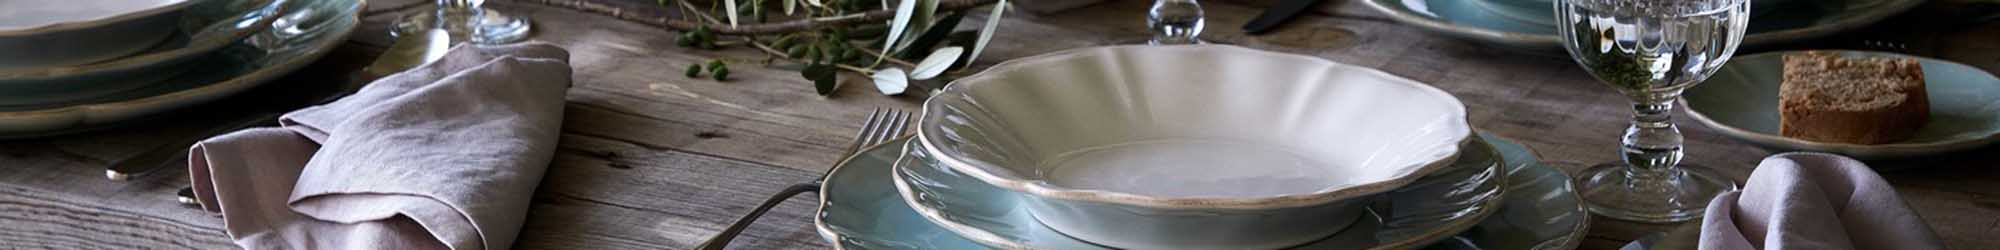 Costa Nova Alentejo Dinnerware Collection